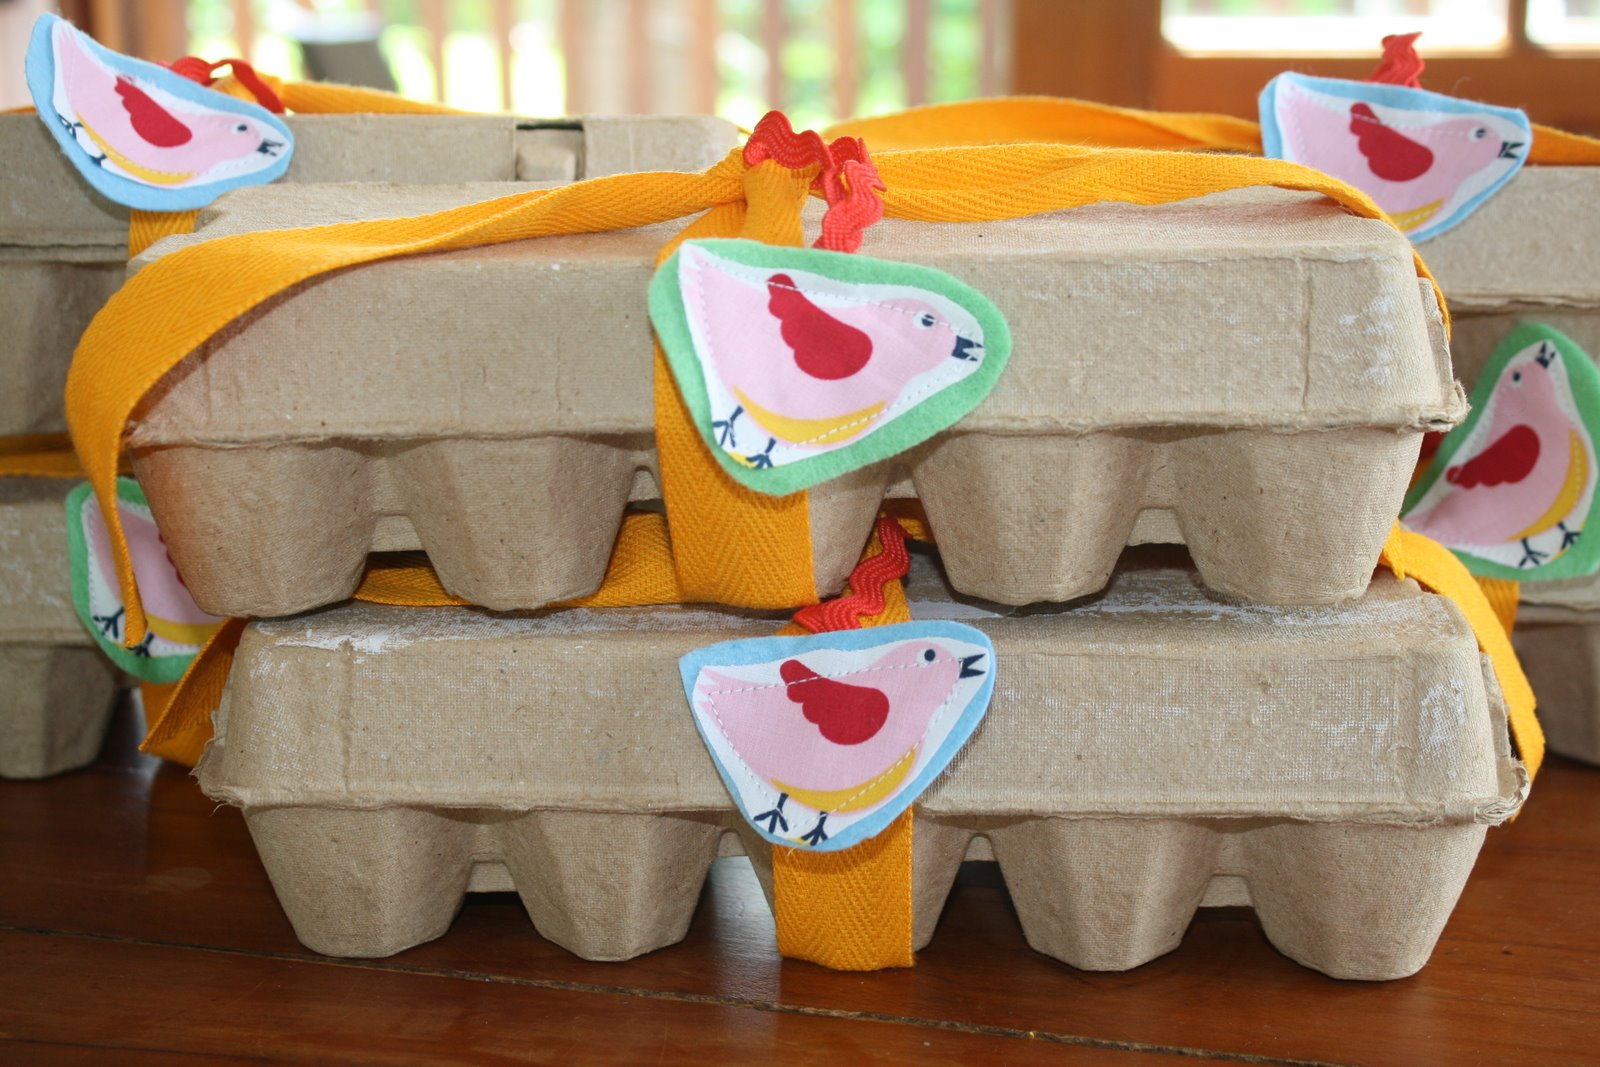 A handmade gift im a big fan of reusing and making simple treats and i had this idea for easter gifts for family this year take an egg carton make some chocolates and negle Image collections